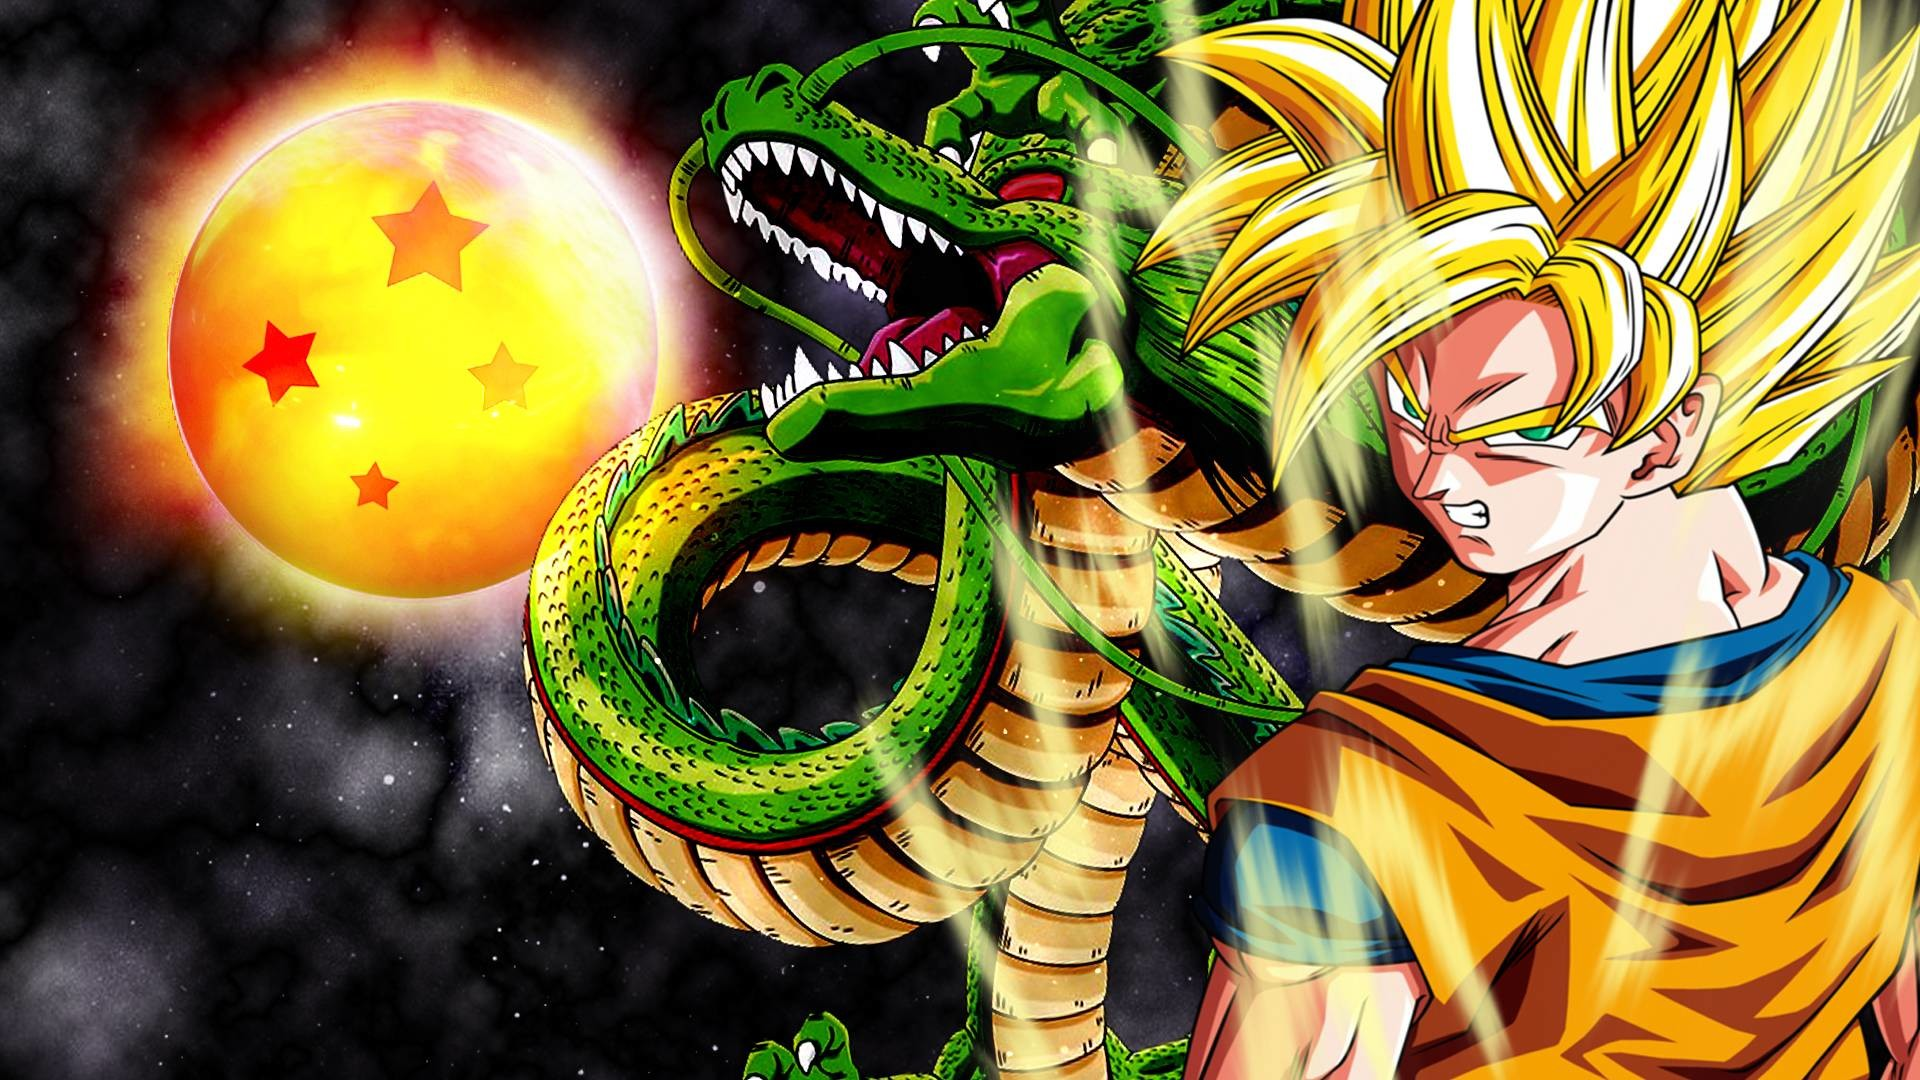 Dragon Ballz Wallpaper 75 Images